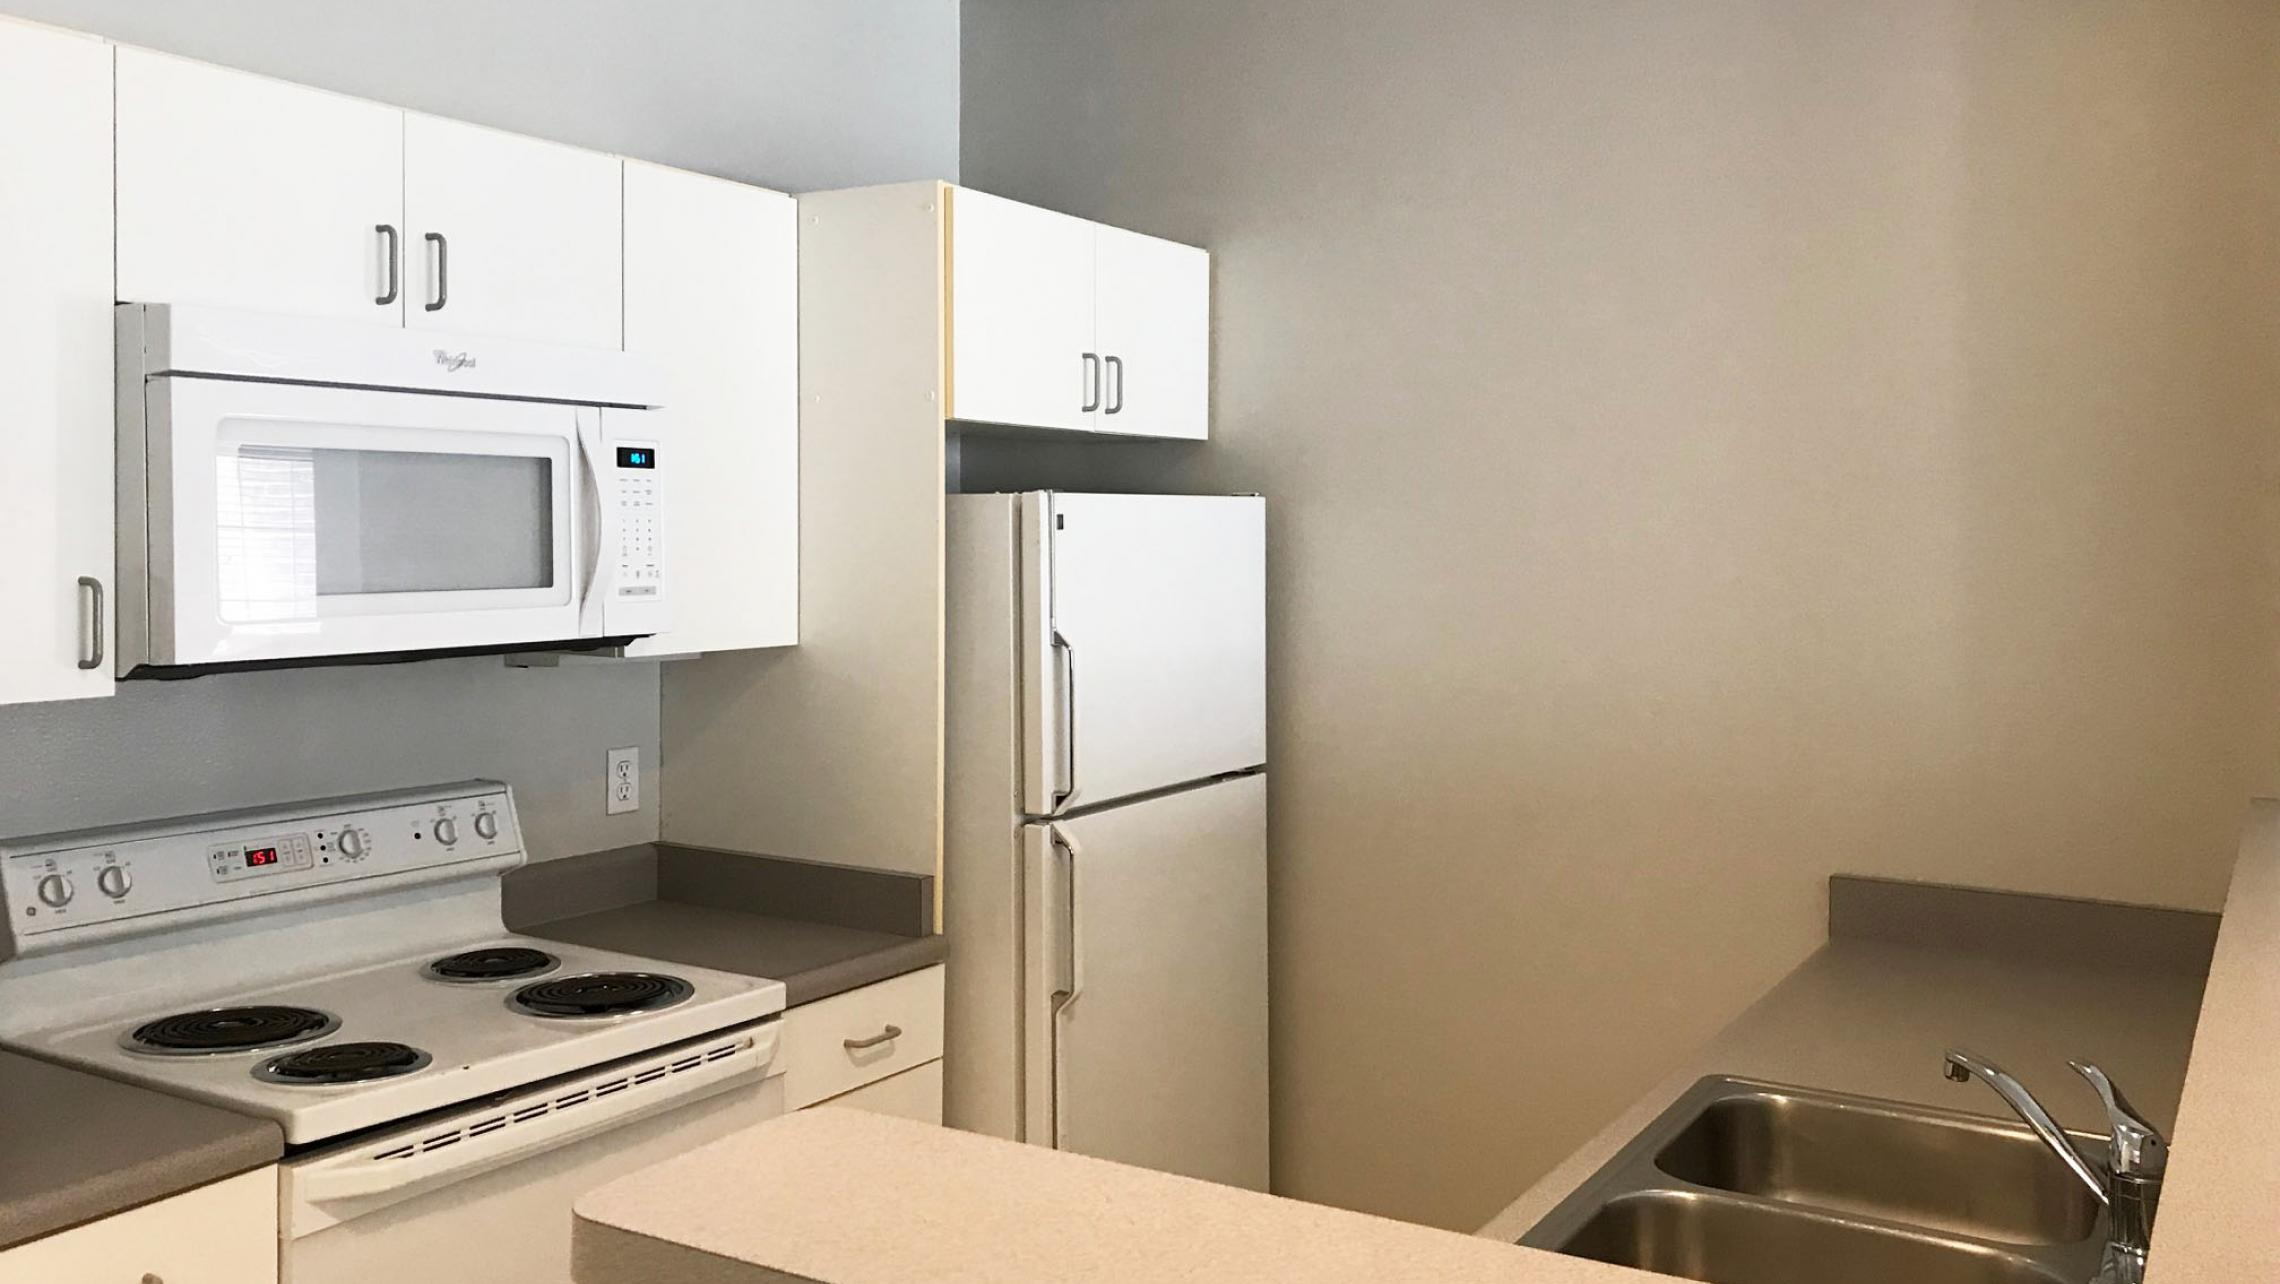 Wilson-Bay-Apartment-108-Two-Bedroom-Downtown-Madison-Balcony-Living-Dining-Bathroom-Laundry